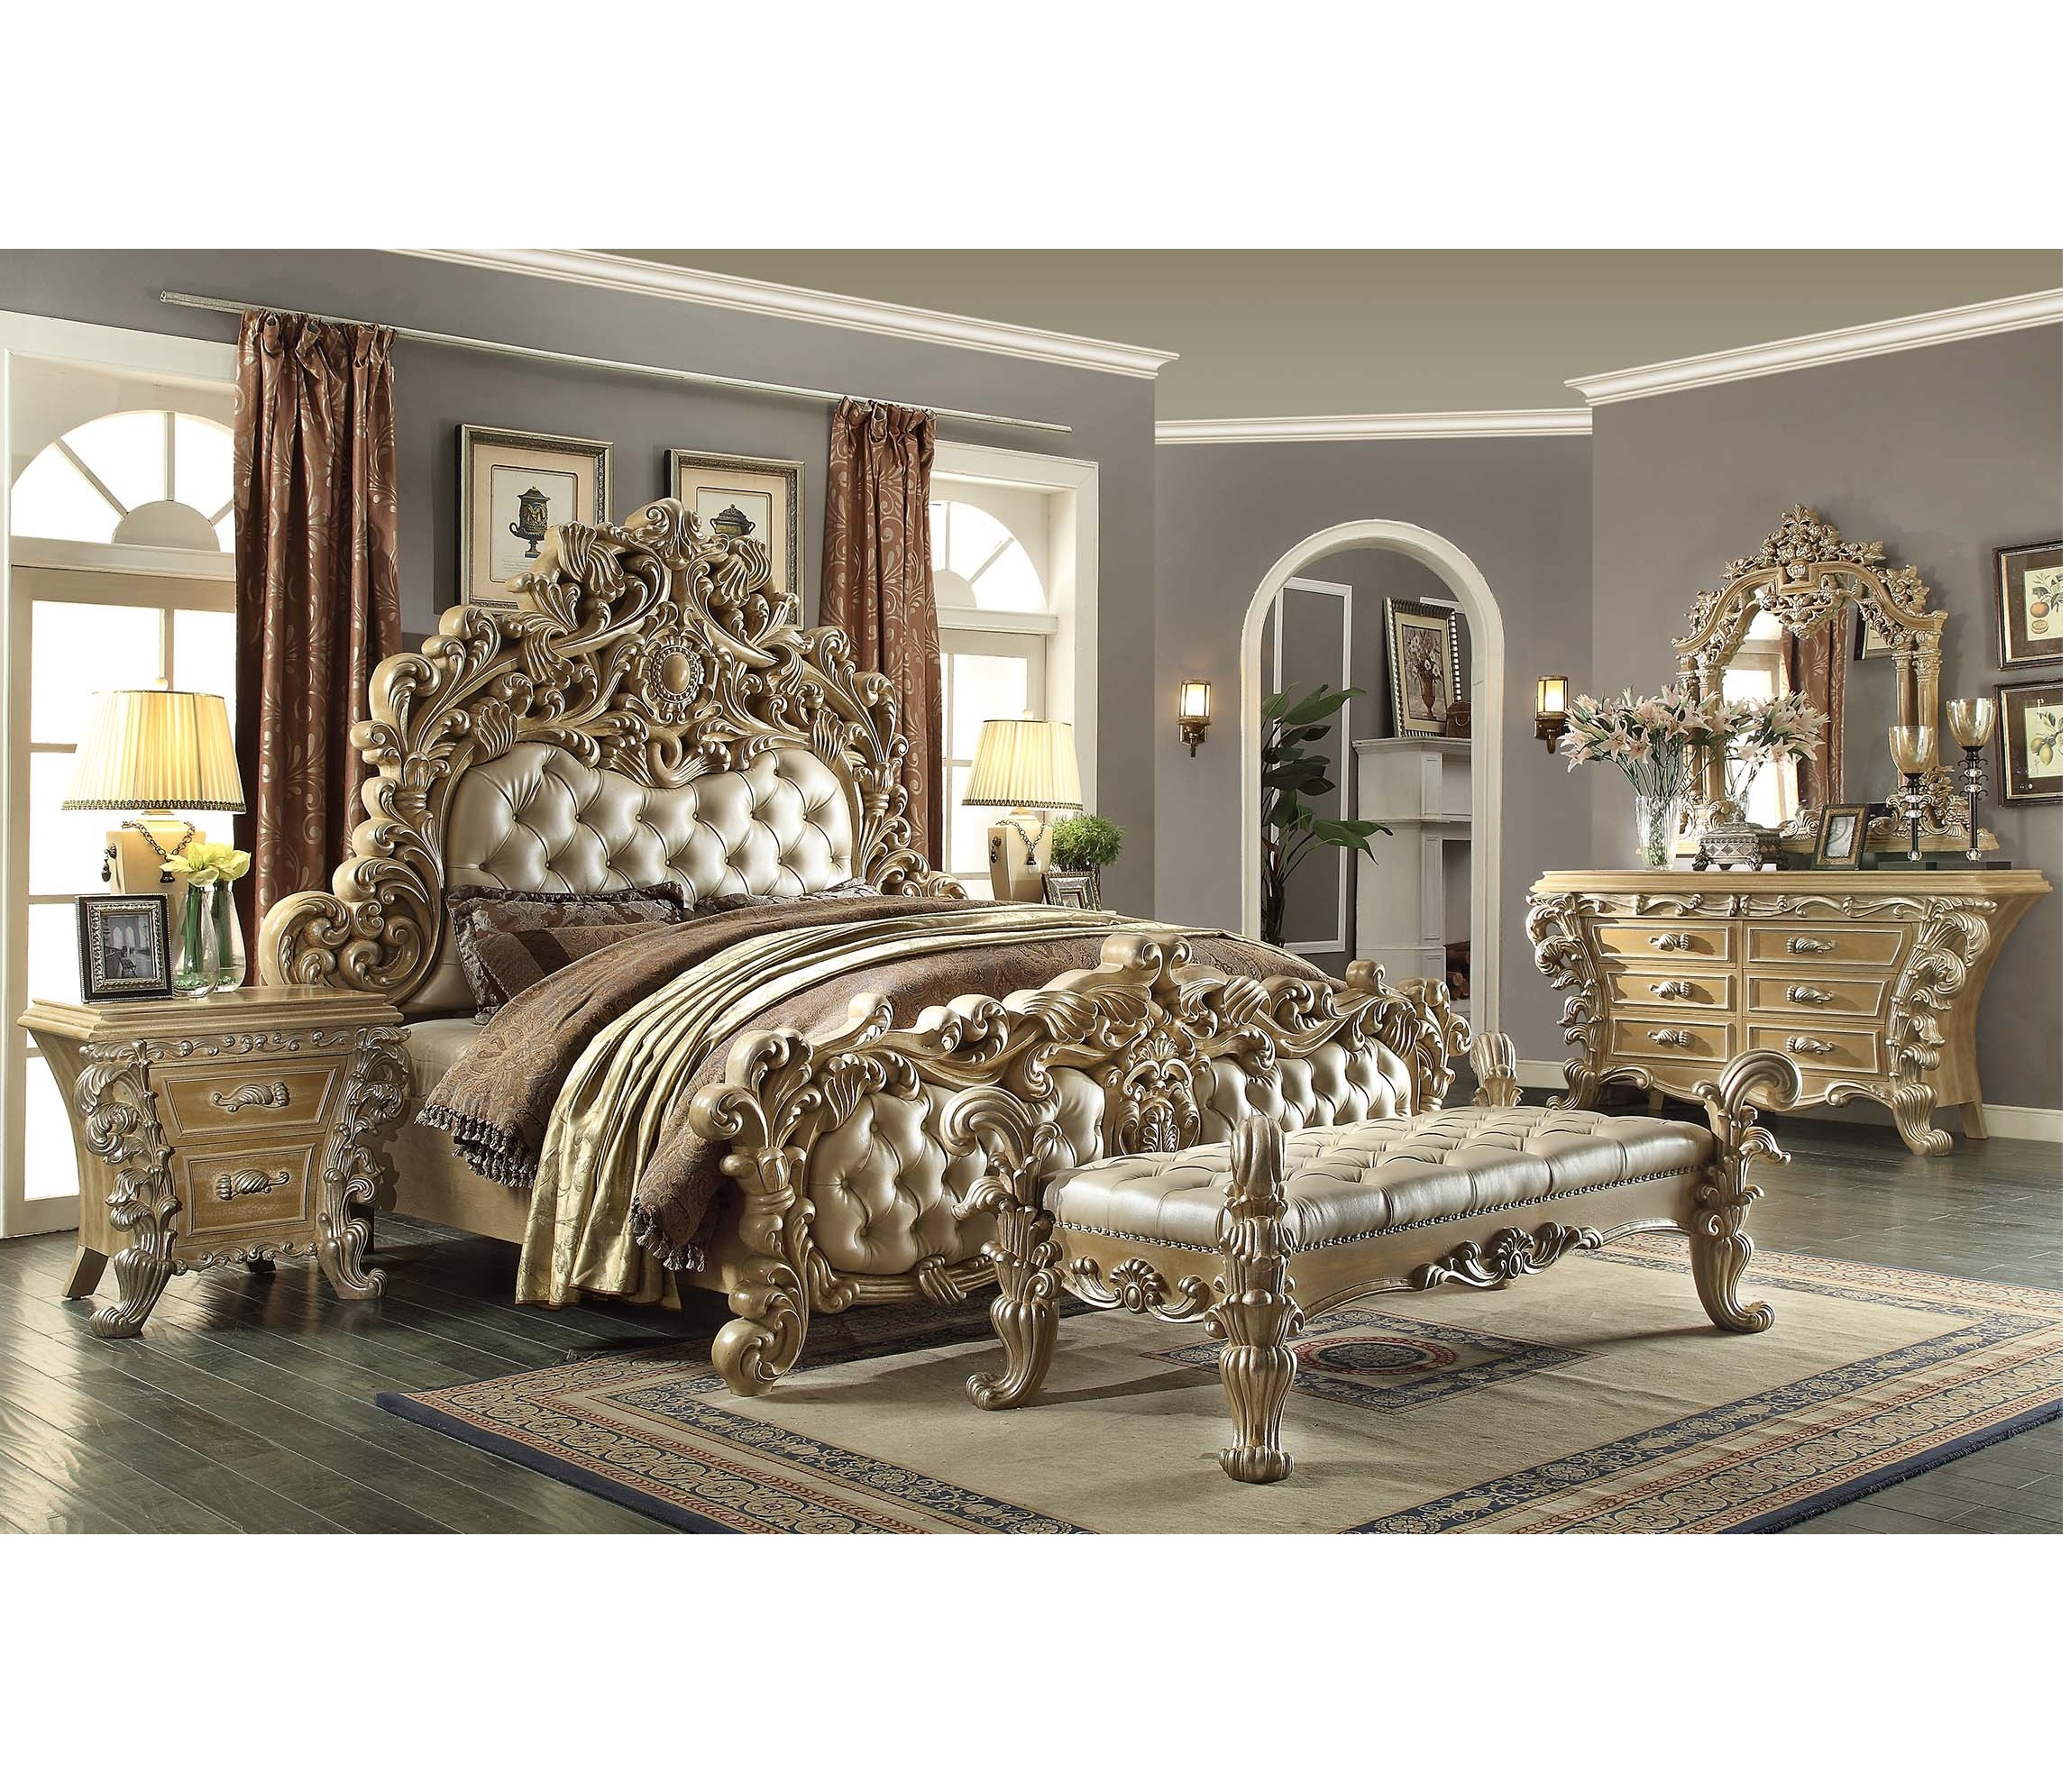 Luxury Bedroom Furniture Sets Victorian Style Furniture For